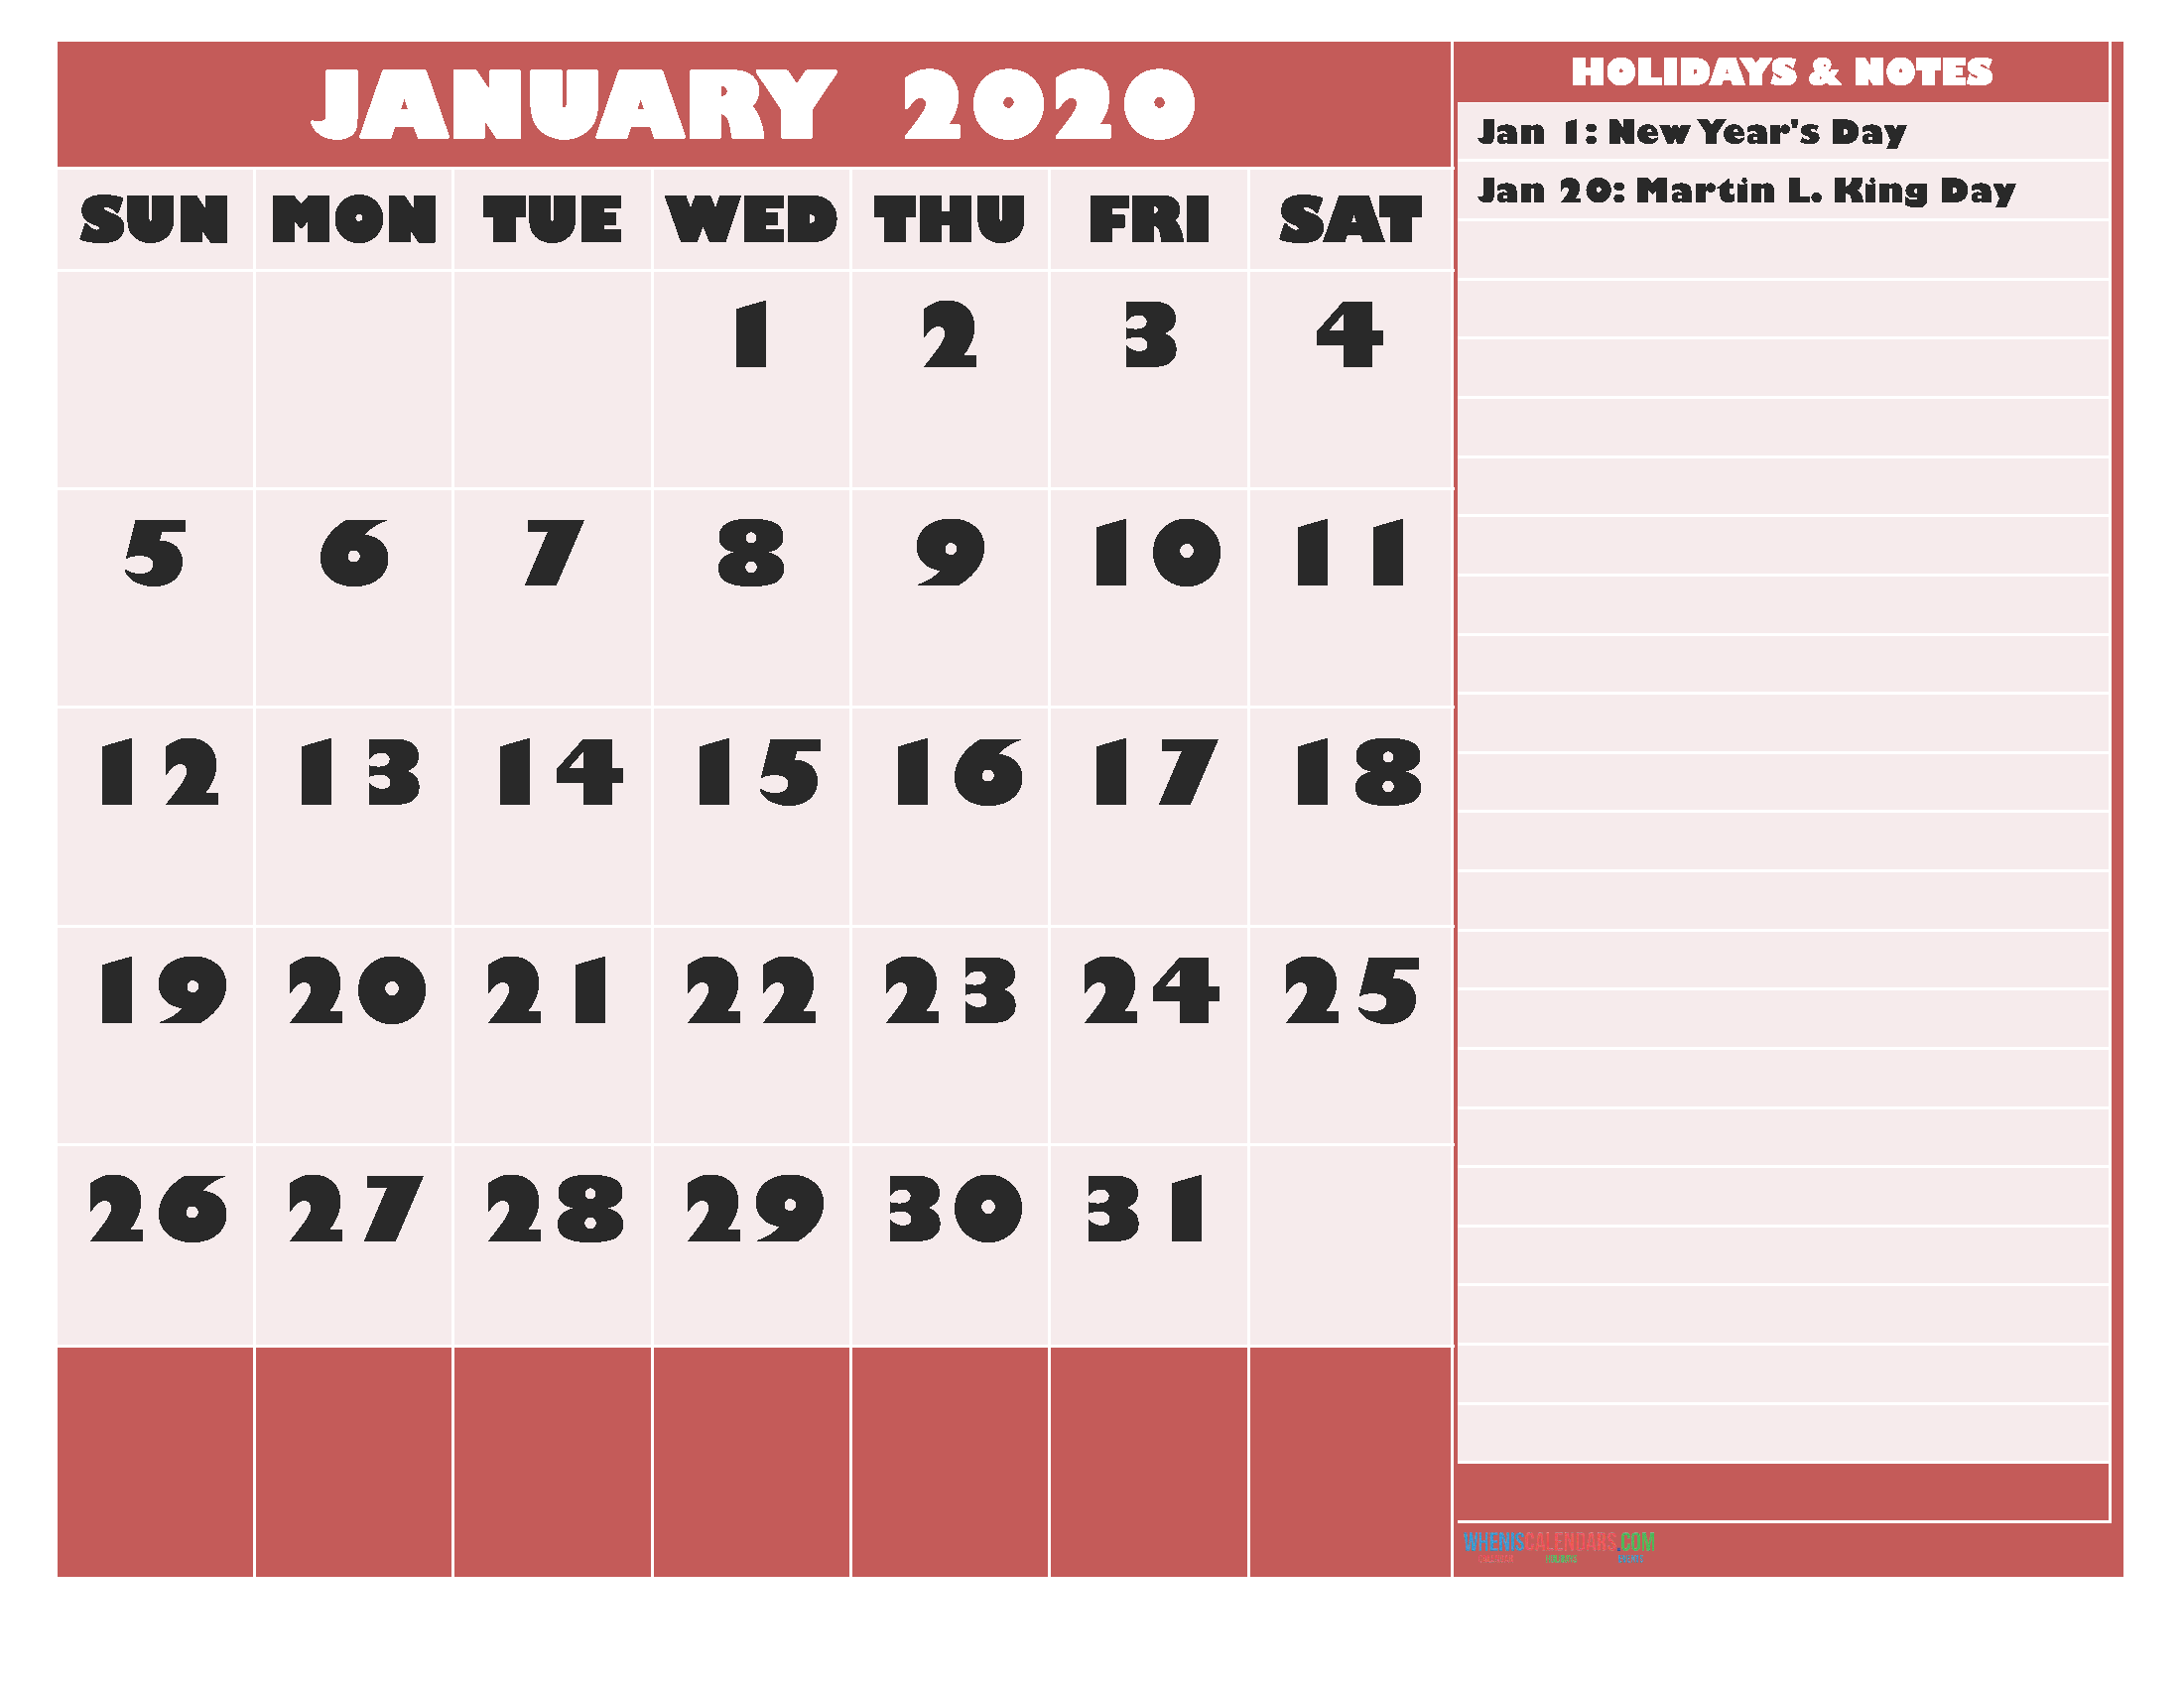 Free Printable Monthly Calendar 2020 January with Holidays